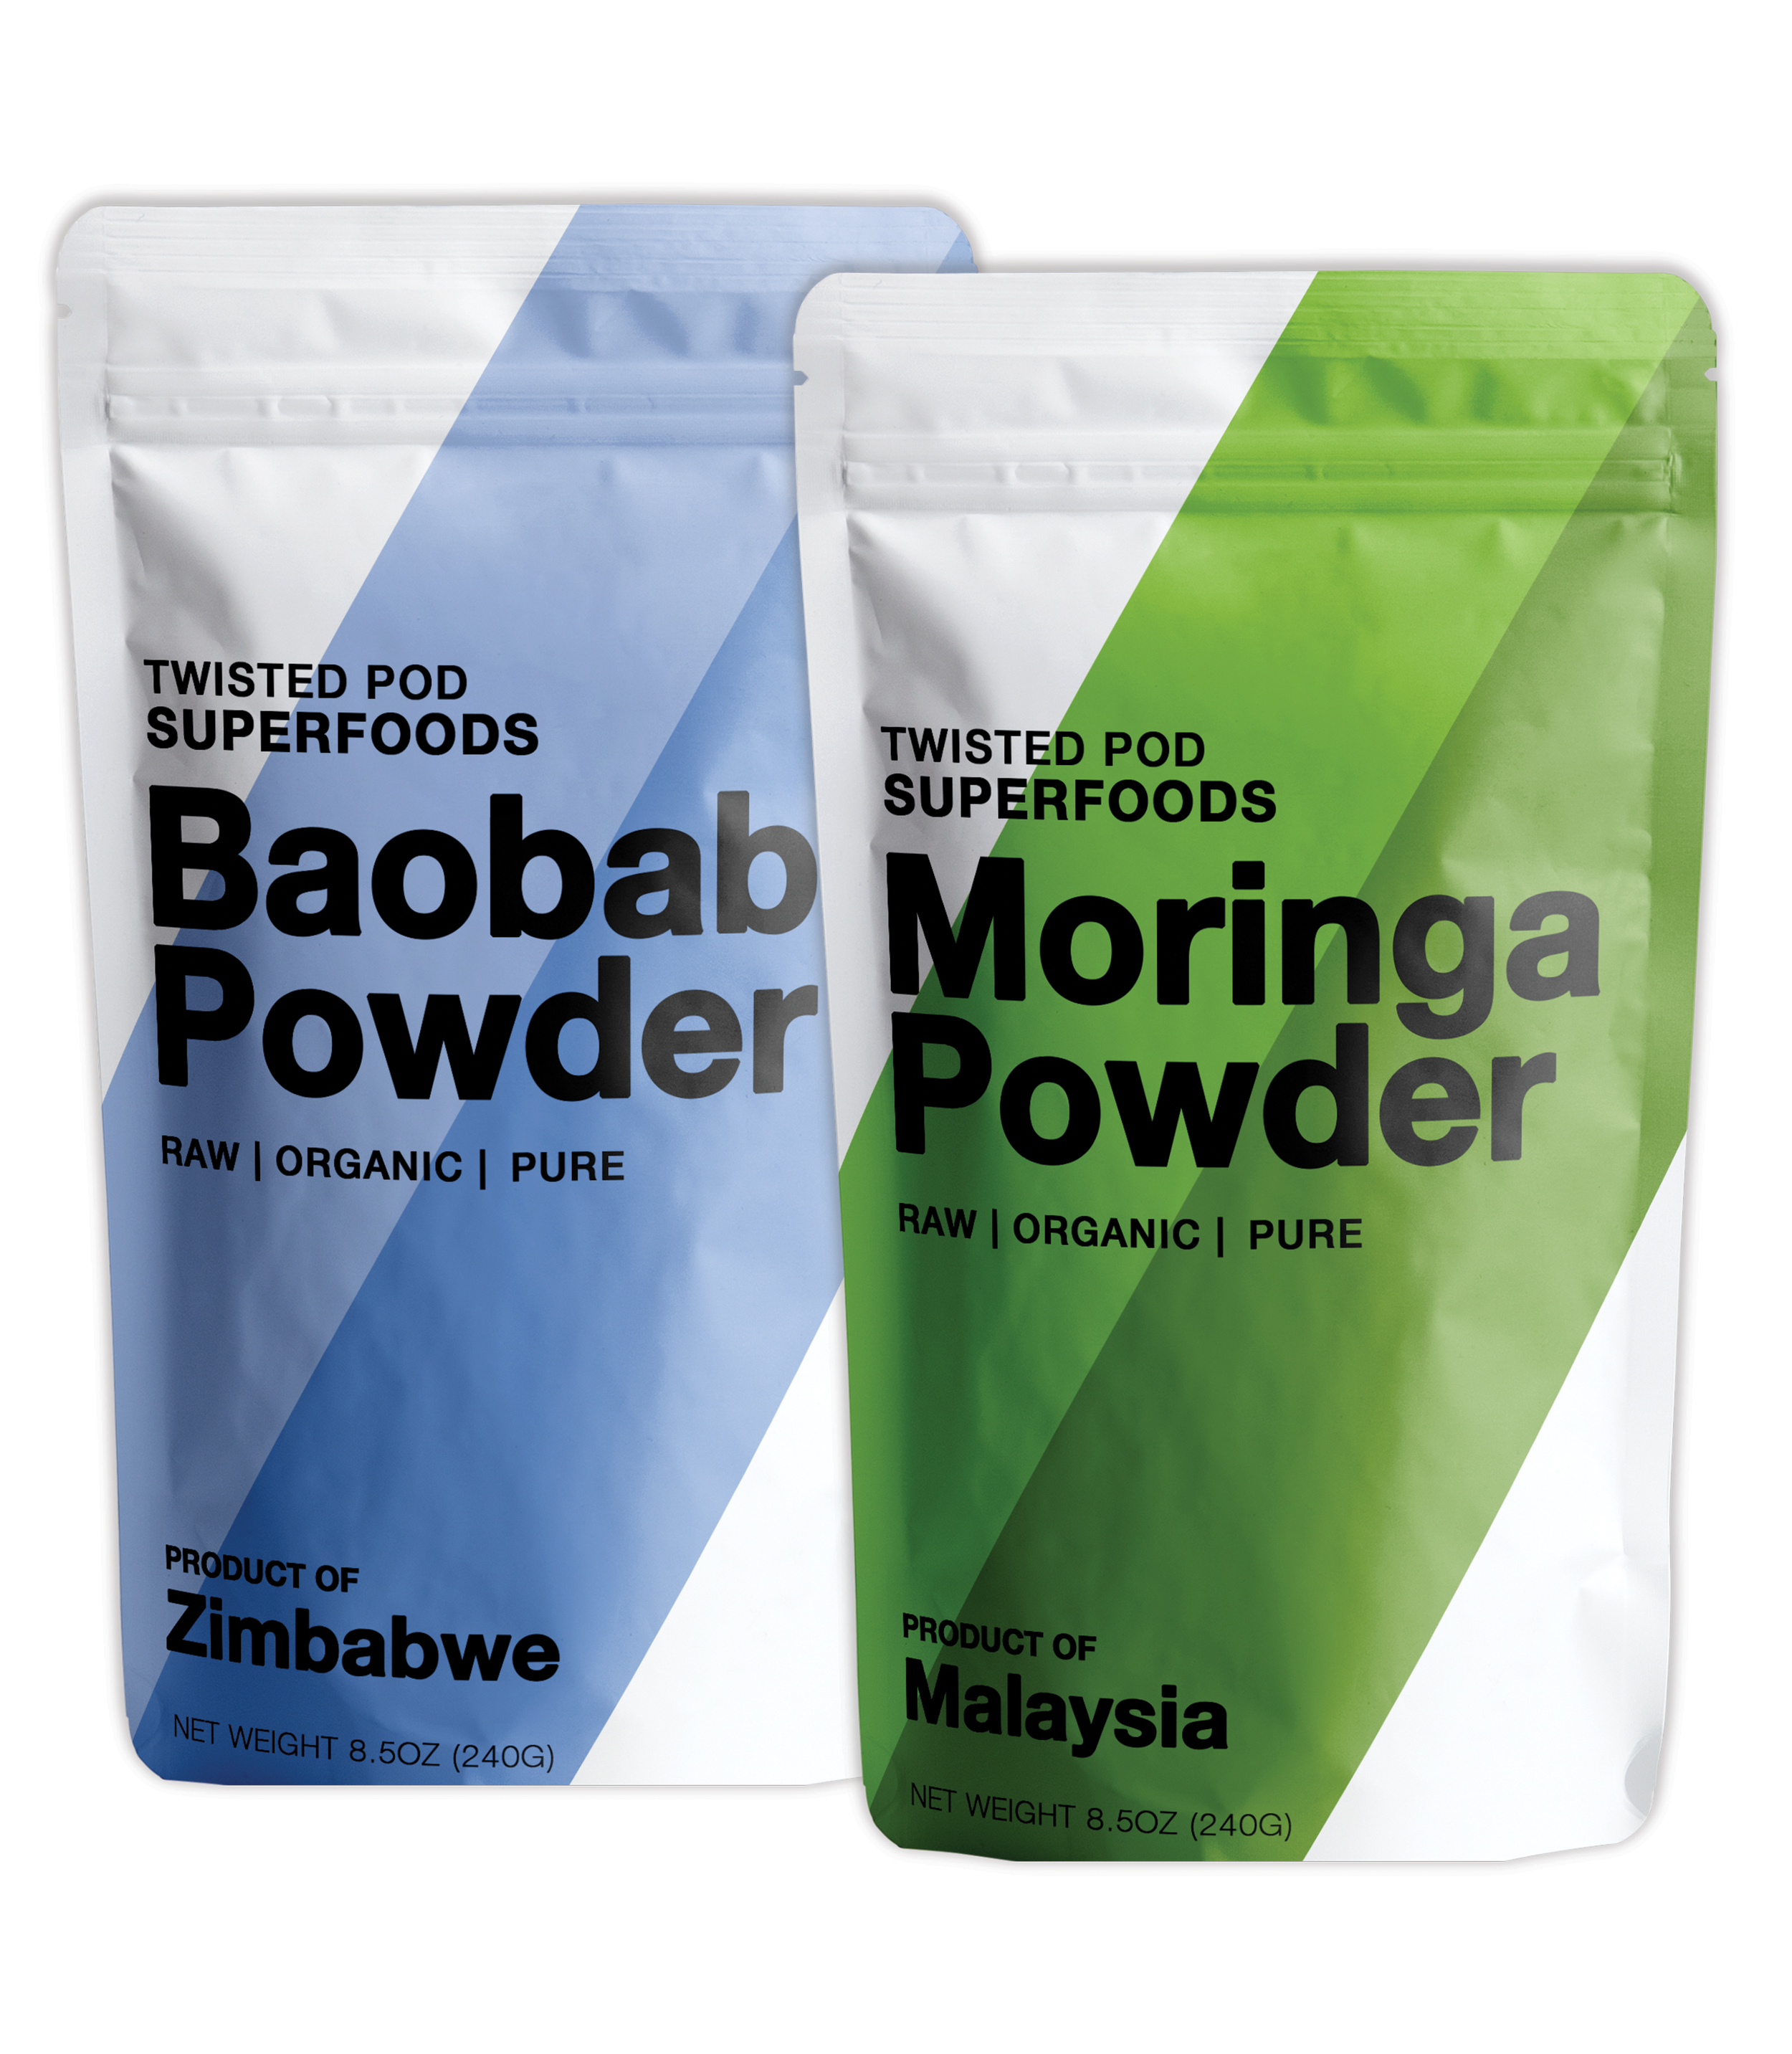 Twisted Pod    When you need to perform at your best, Twisted Pod Superfoods has got your back and your blender. A dose of our Moringa or Baobab powders, along with a healthy diet and exercise, will keep your body in tune and have you feeling great.